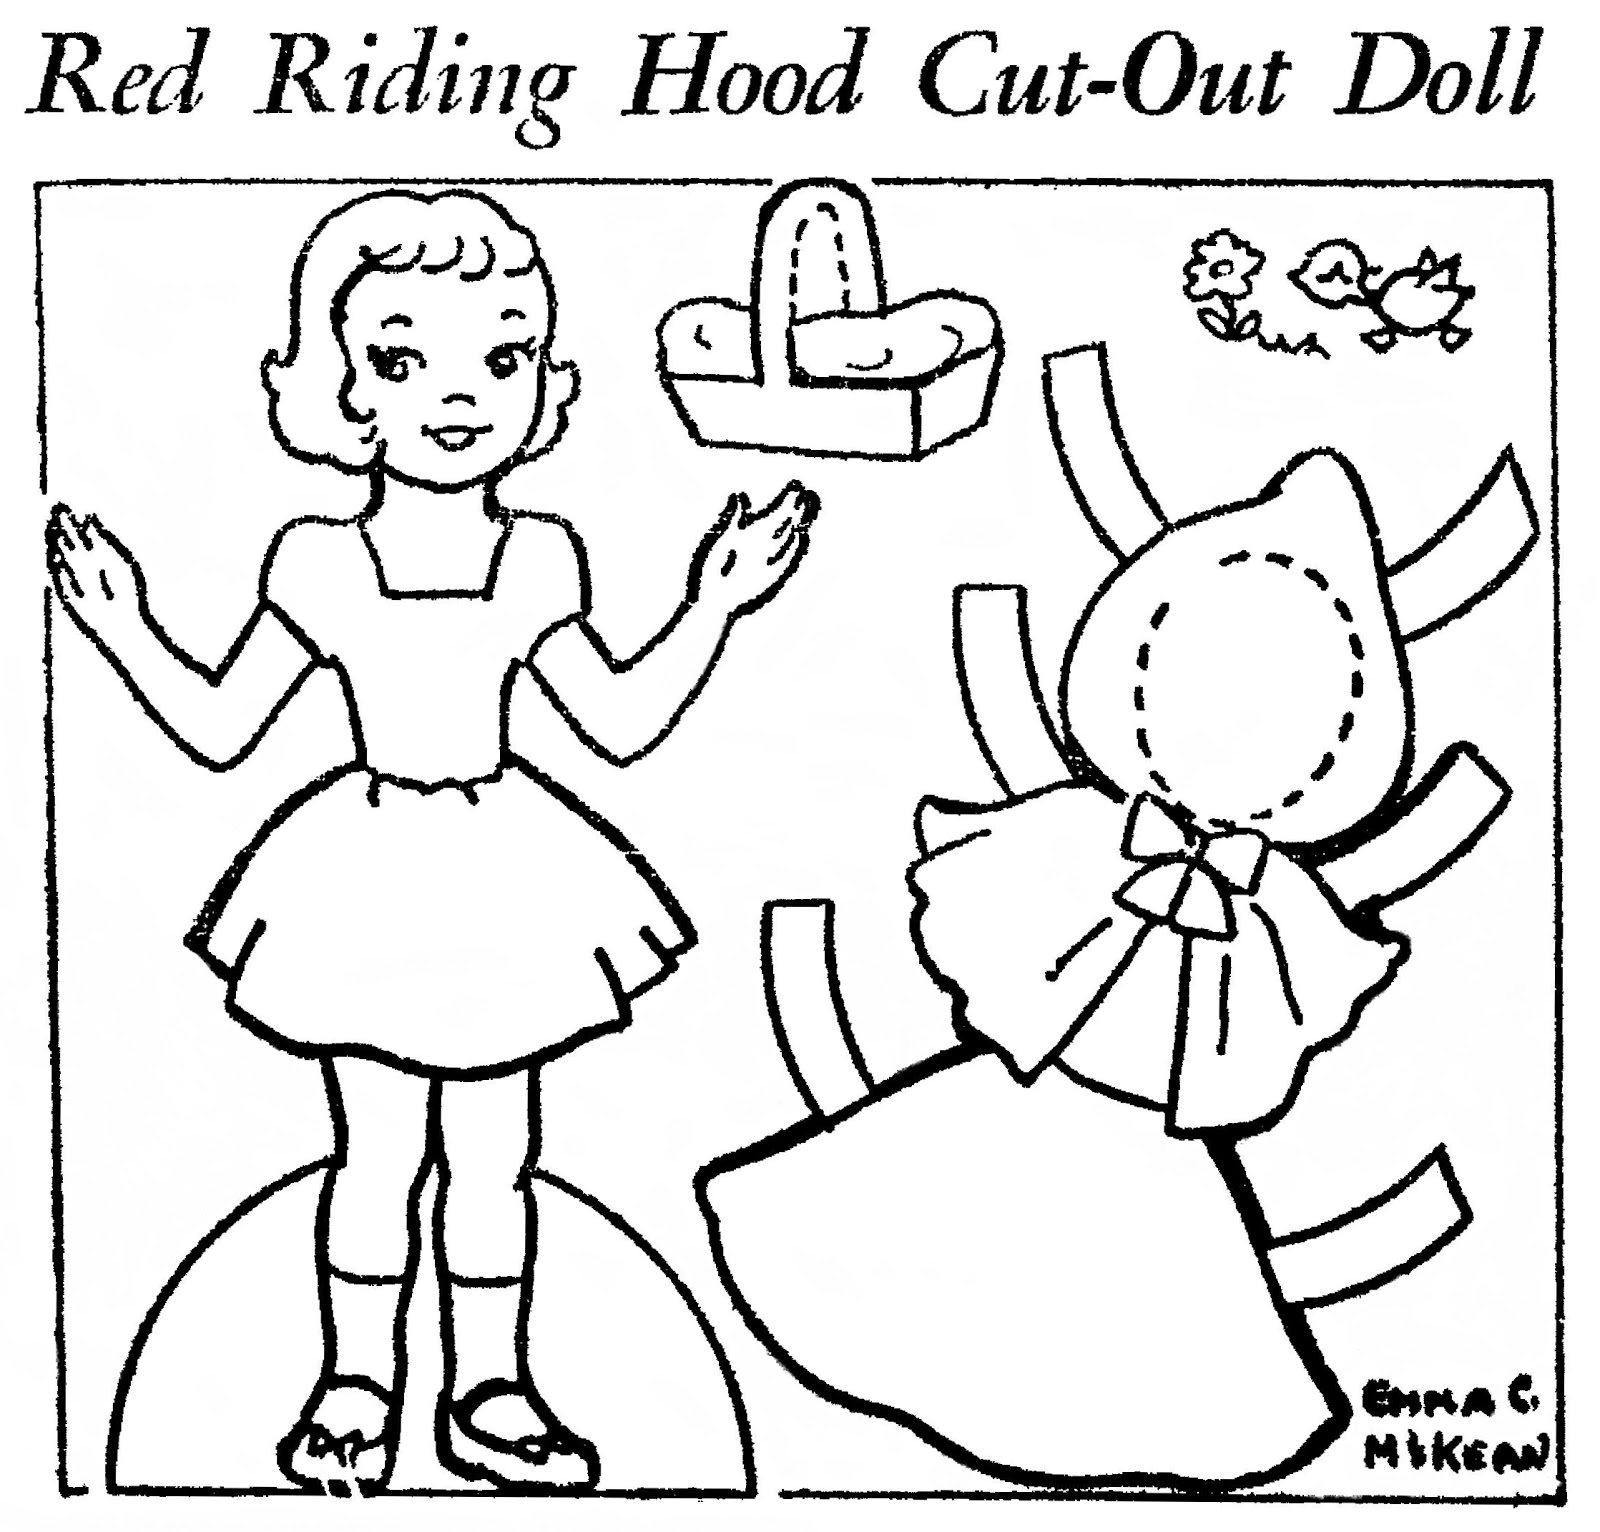 Mostly Paper Dolls Too!: RED RIDING HOOD Cut-Out Doll